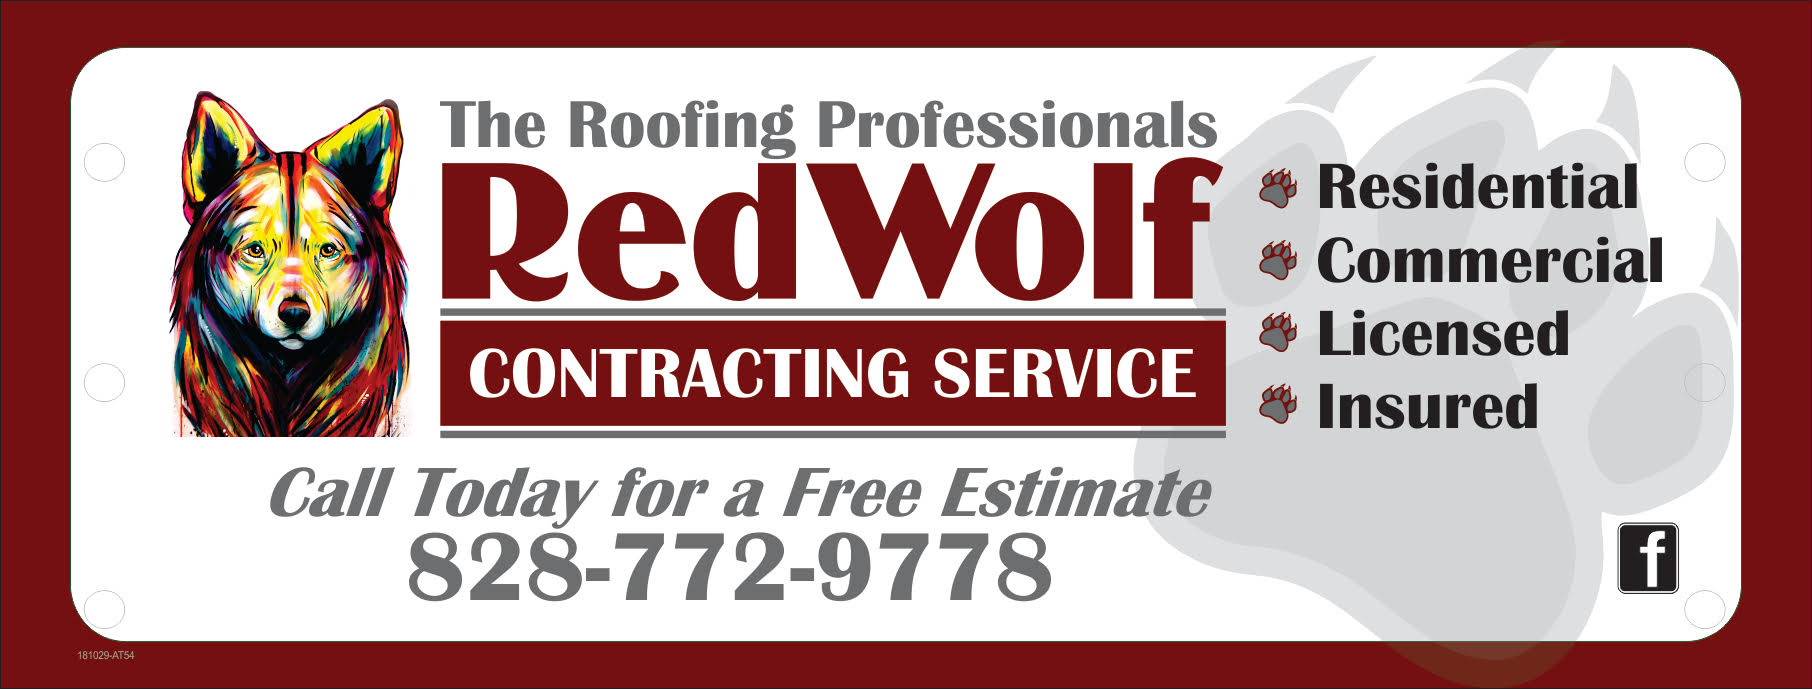 The most trusted roofing contractor in WNC is only one call away! Give Matt and the team a chance to evaluate your roof for free! Call (828)772-9778 or visit their website  nc-roofers.com  to set up your appointment today!